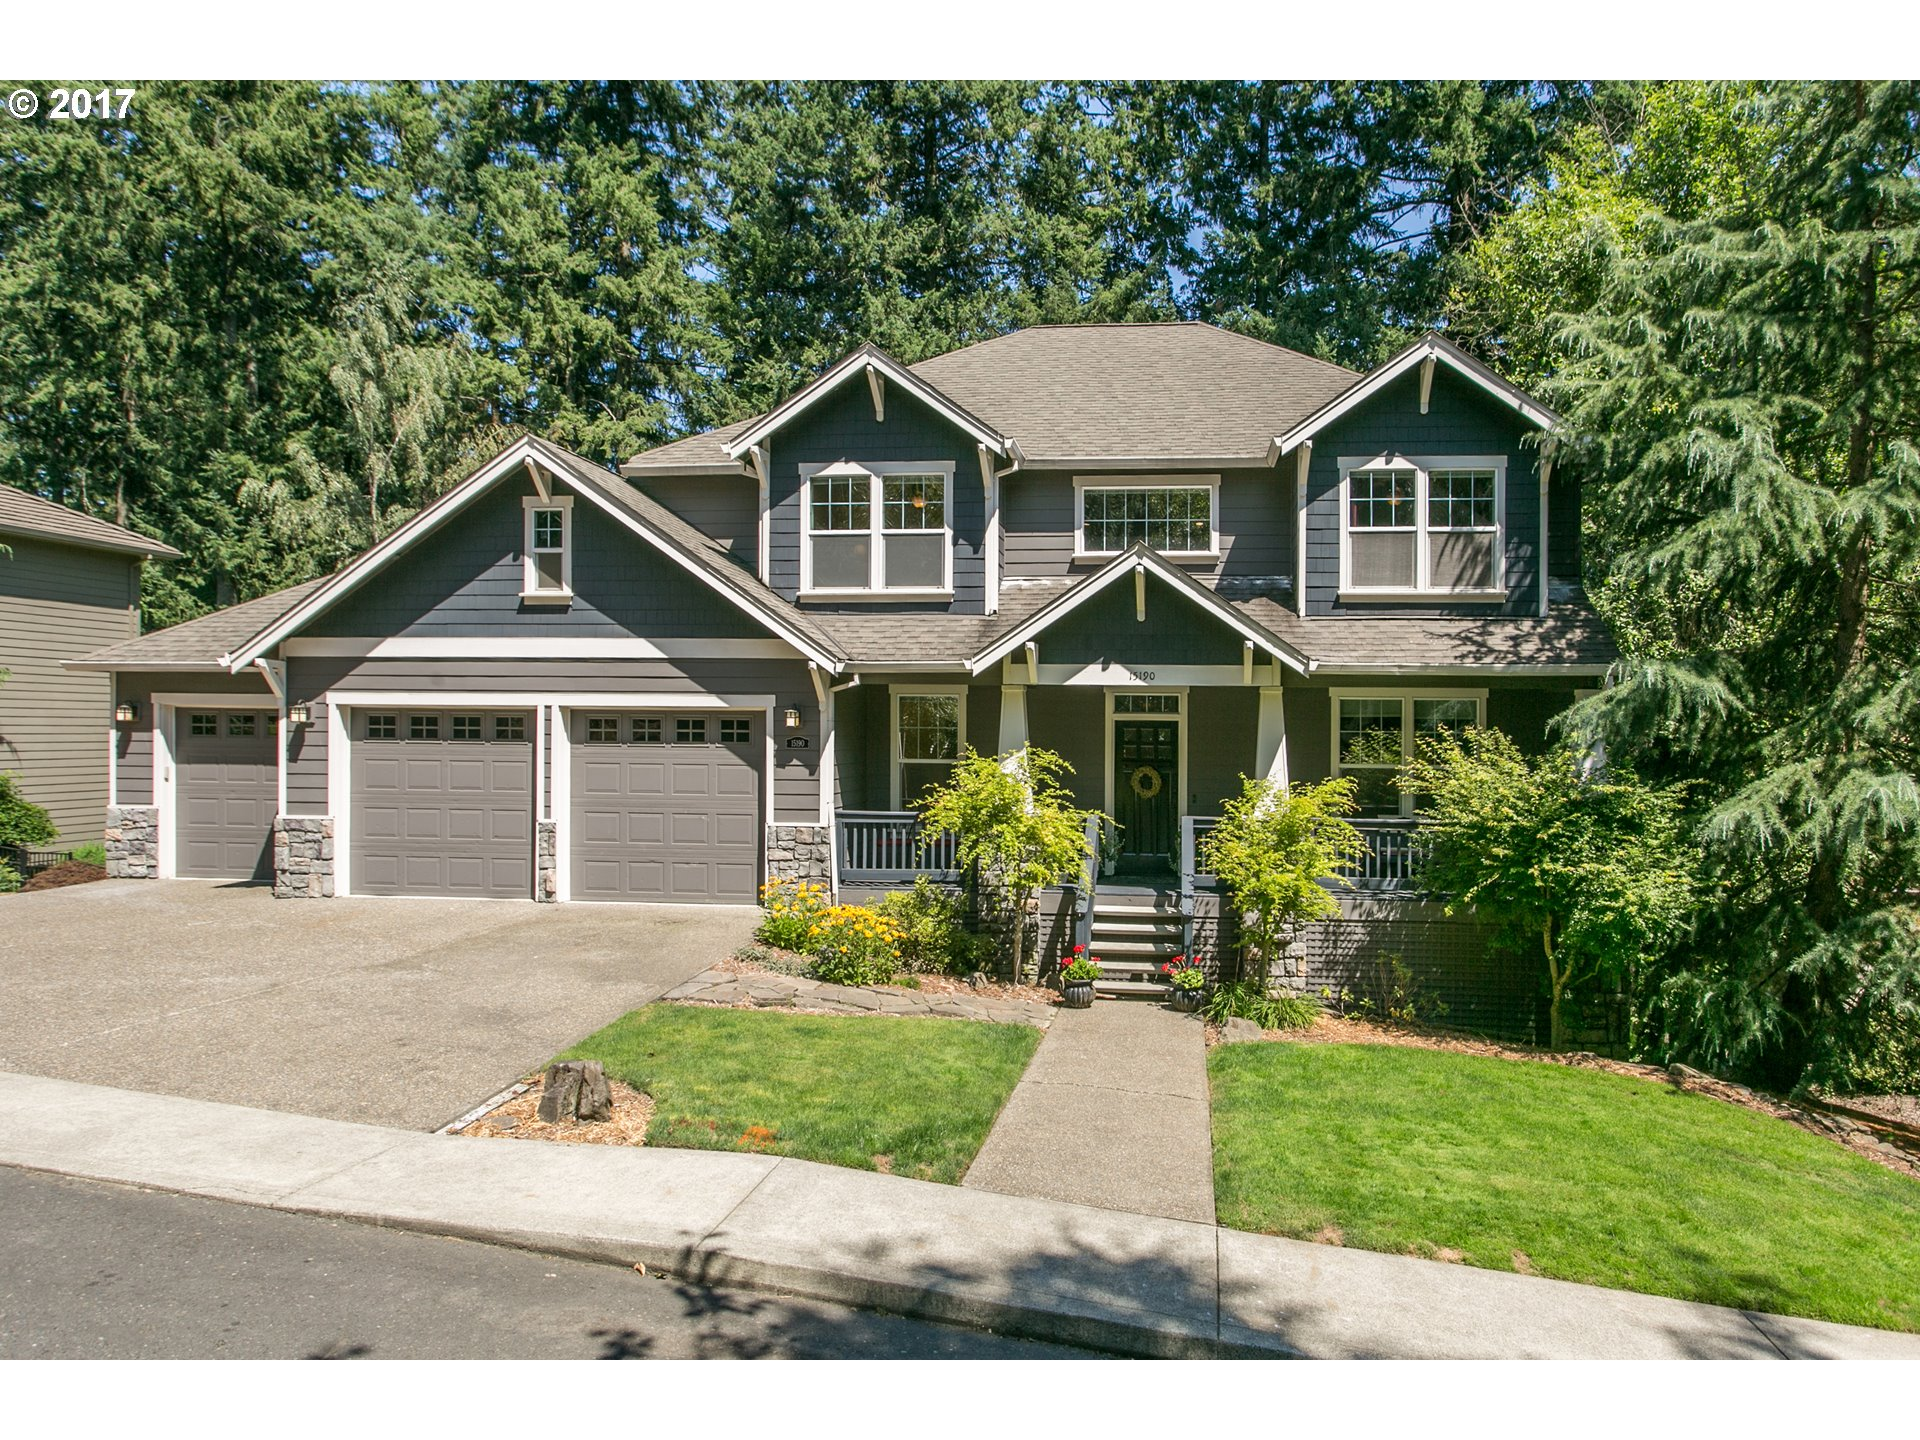 15190 Sw 139th Ave, Tigard, OR 97224